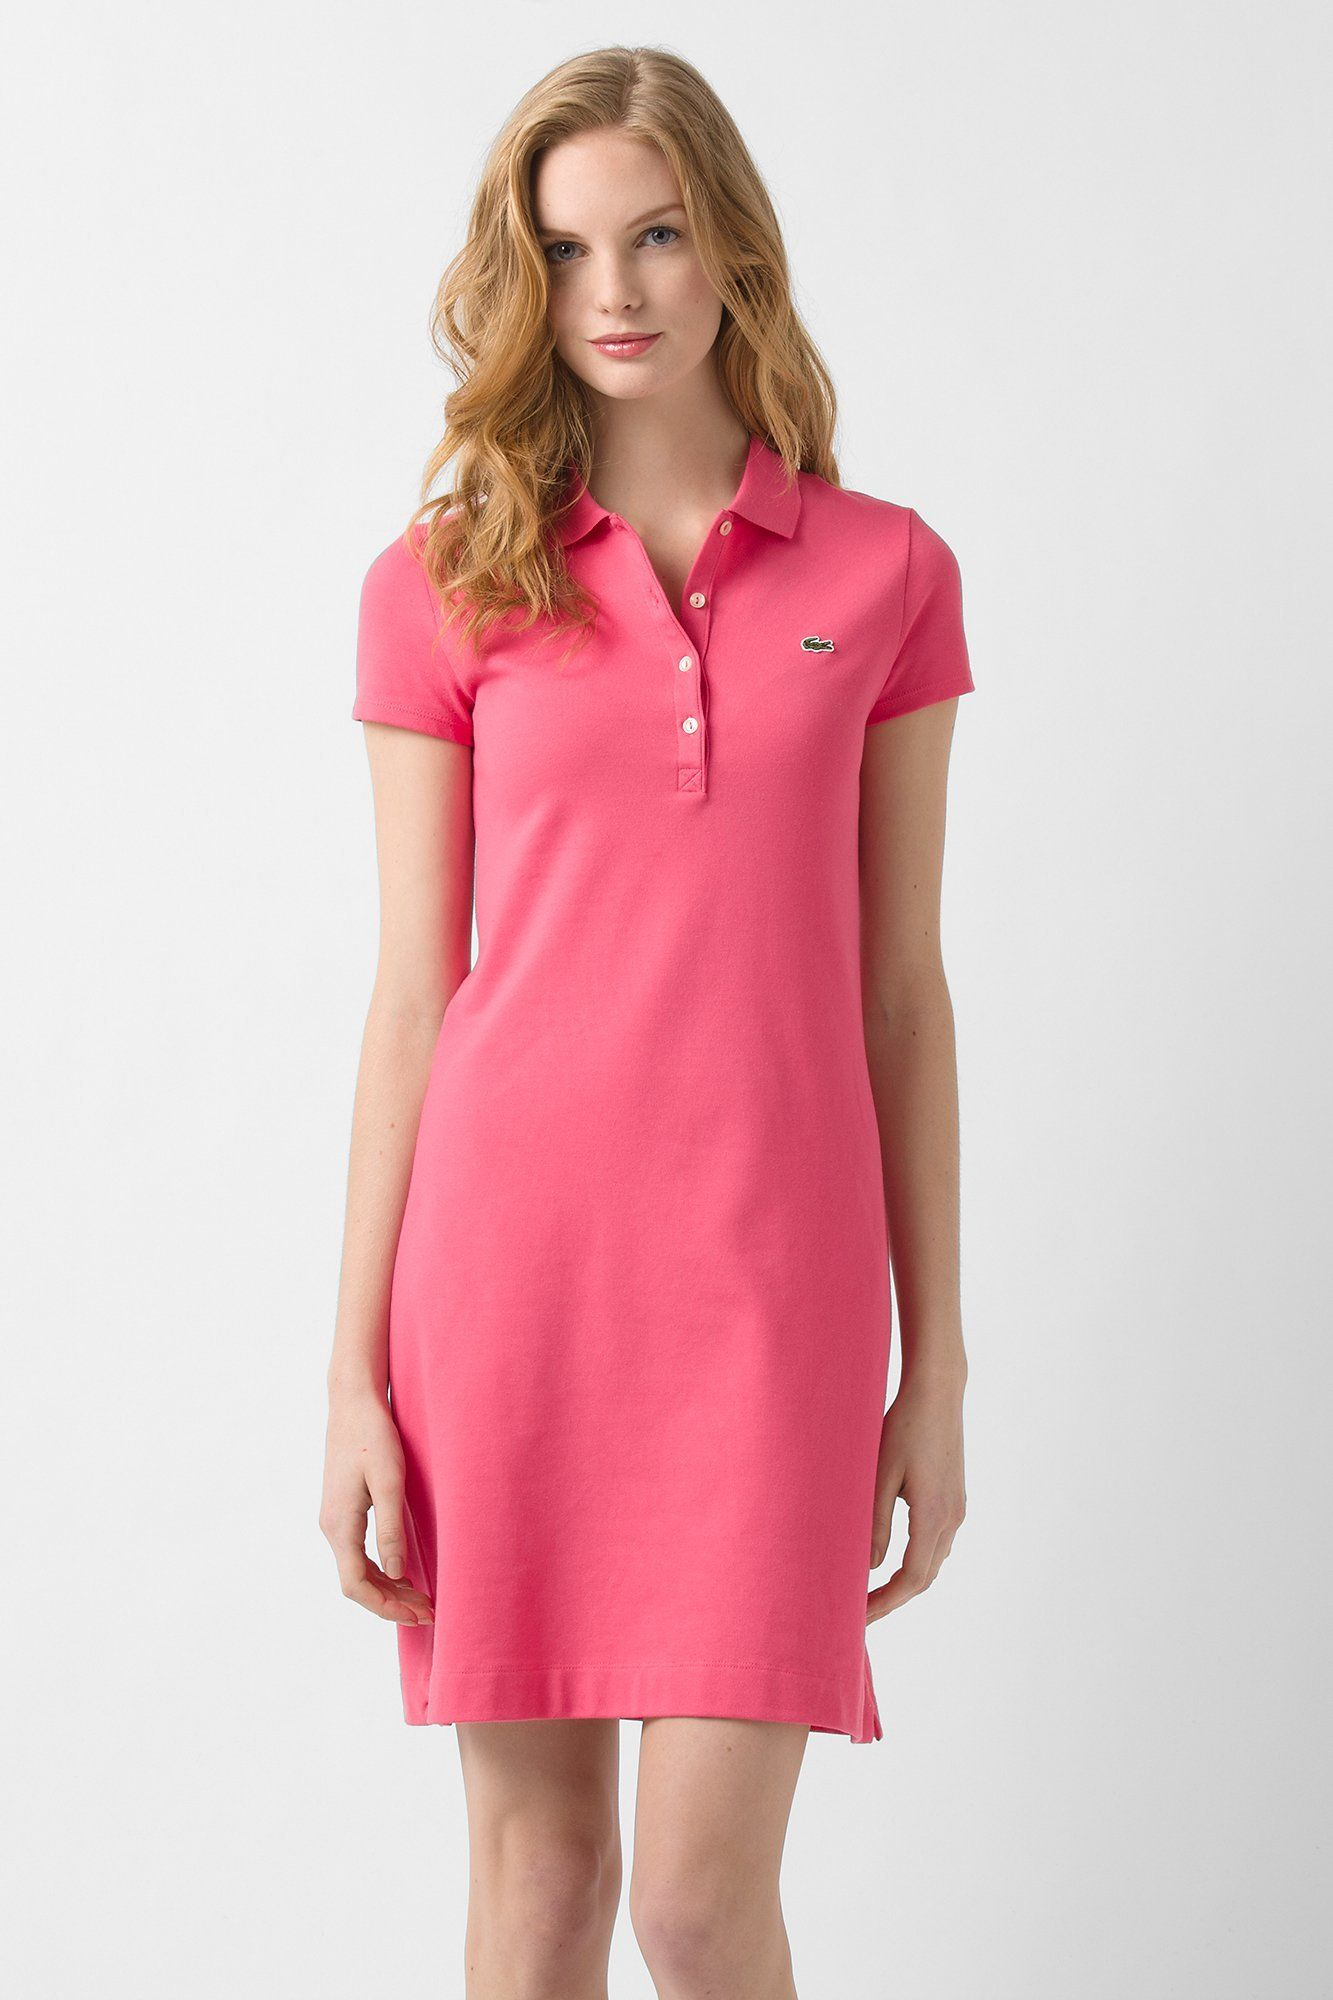 Lacoste short sleeve stretch pique classic polo dress